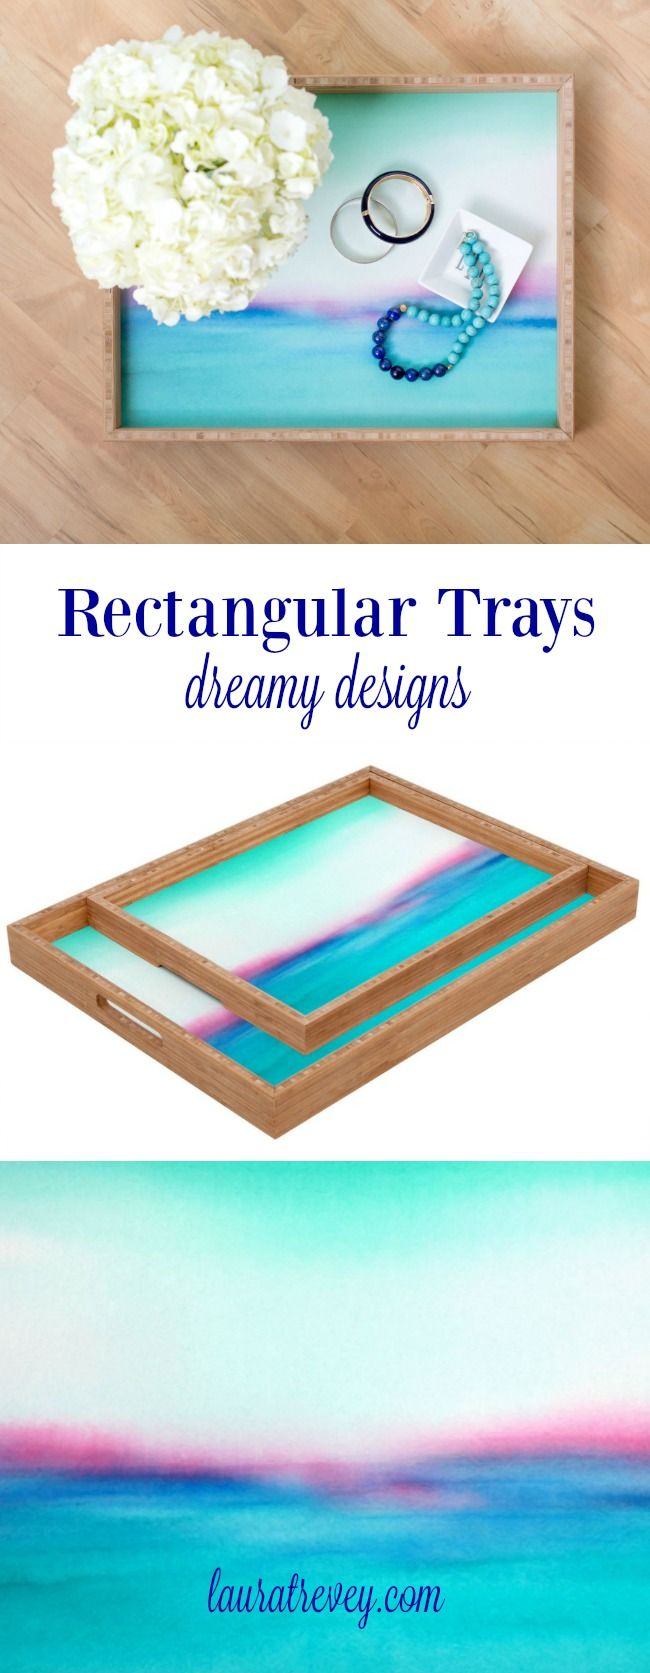 Stylish rectangular trays in dreamy designs for decoration or for serving